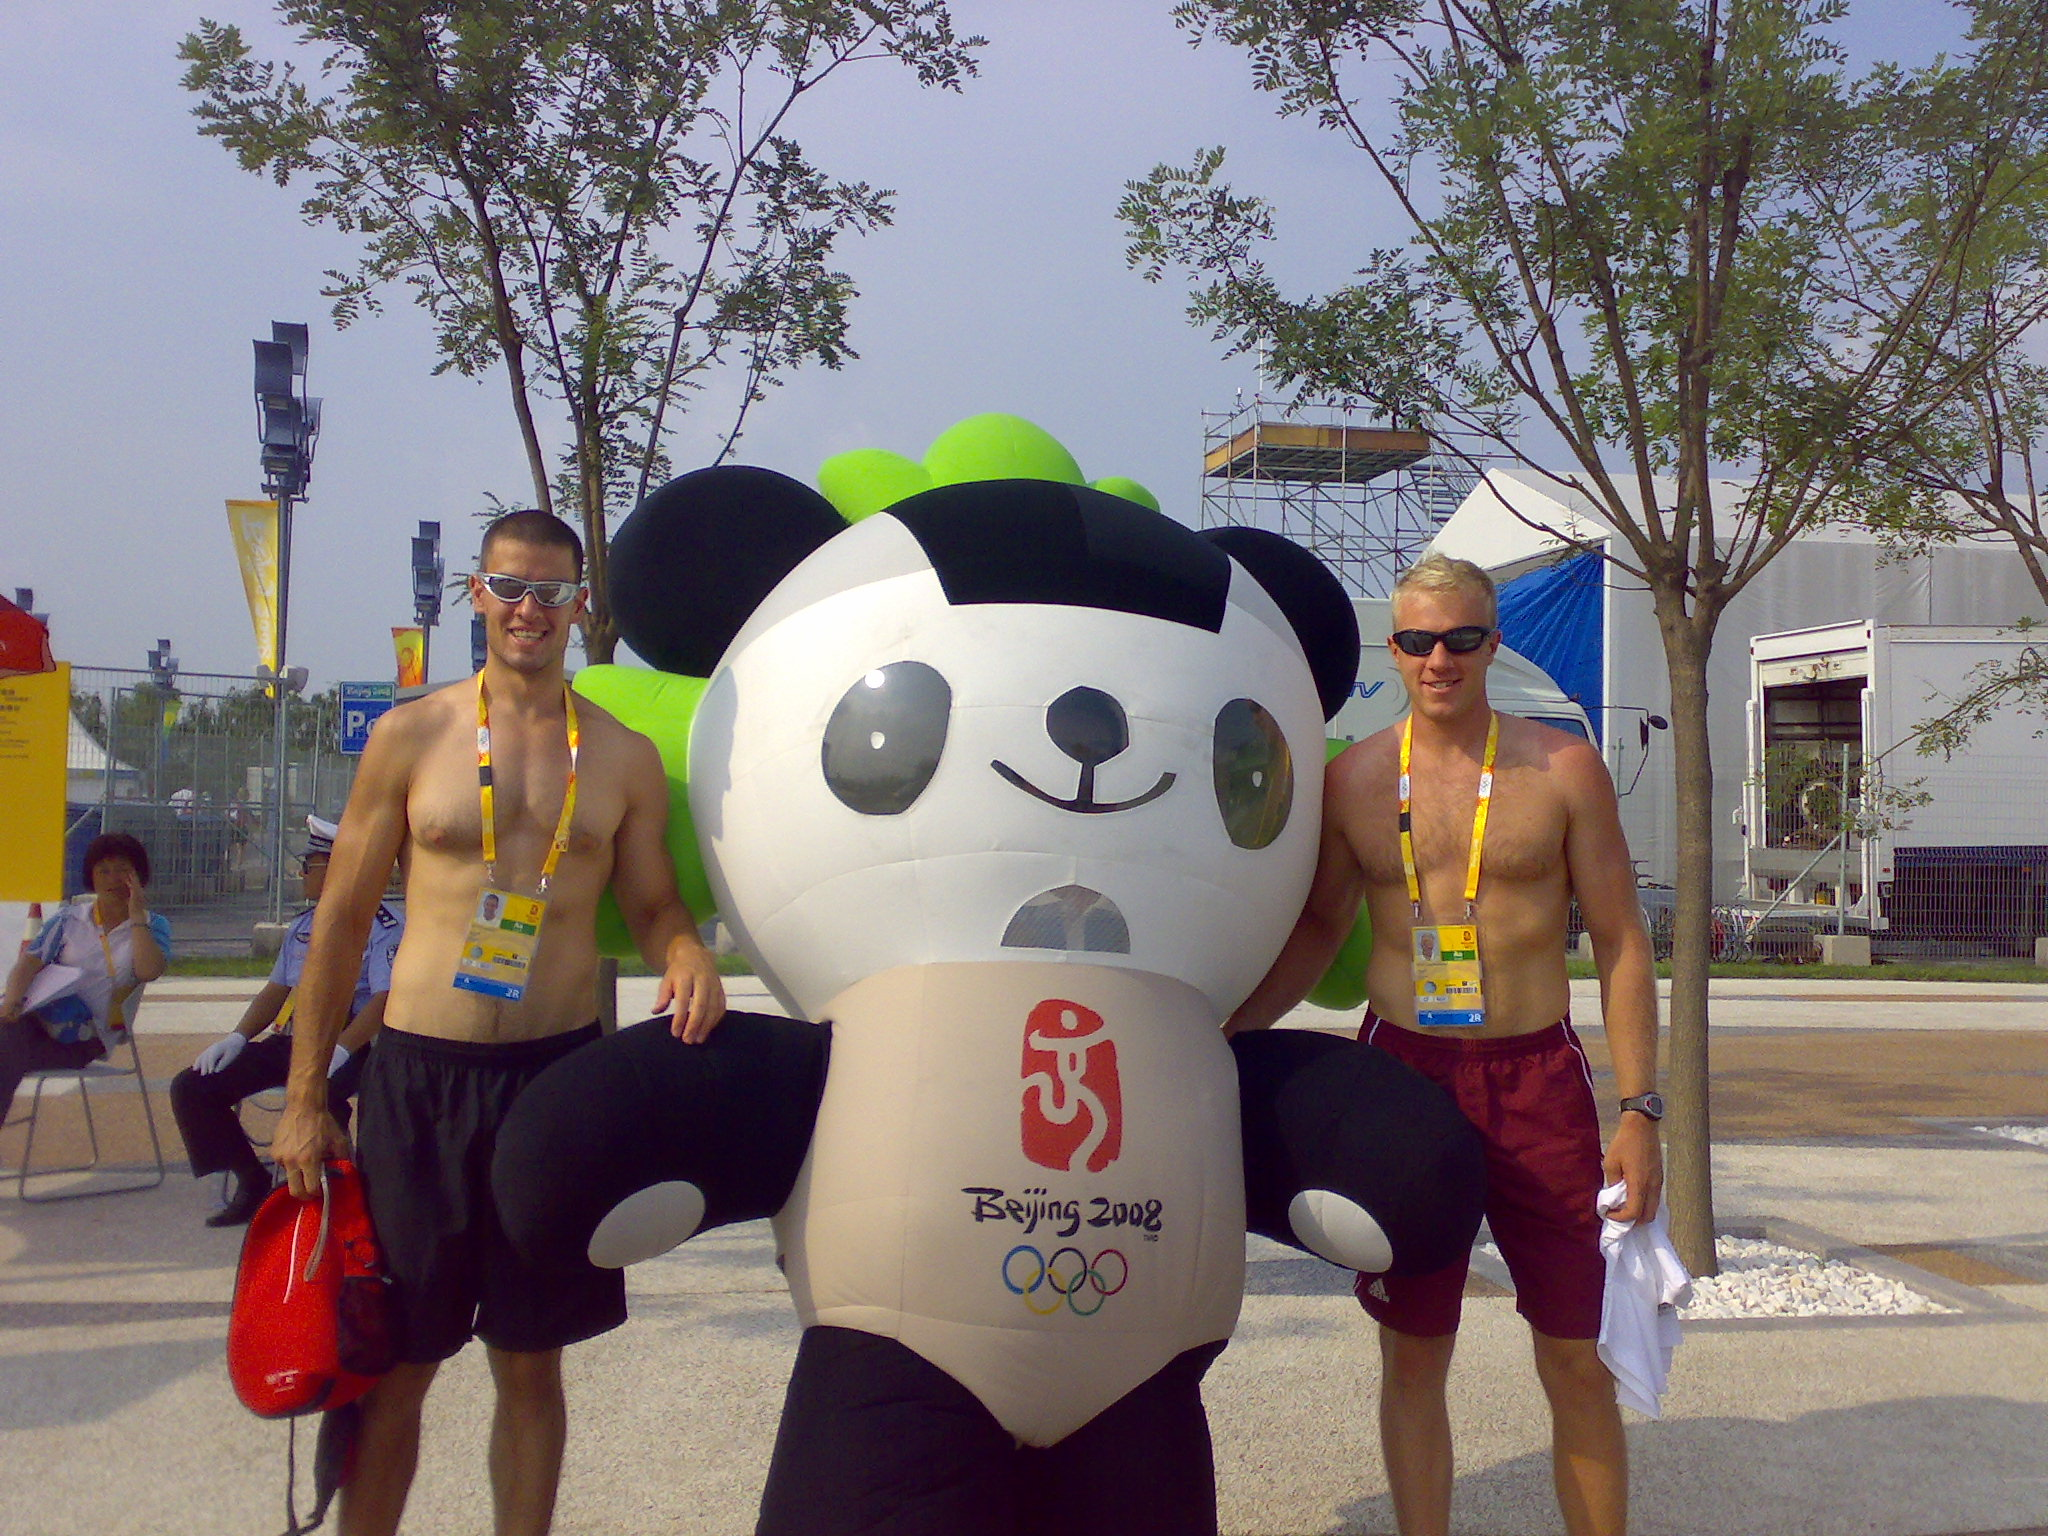 2008, Beijing: With my brother on the olympic games